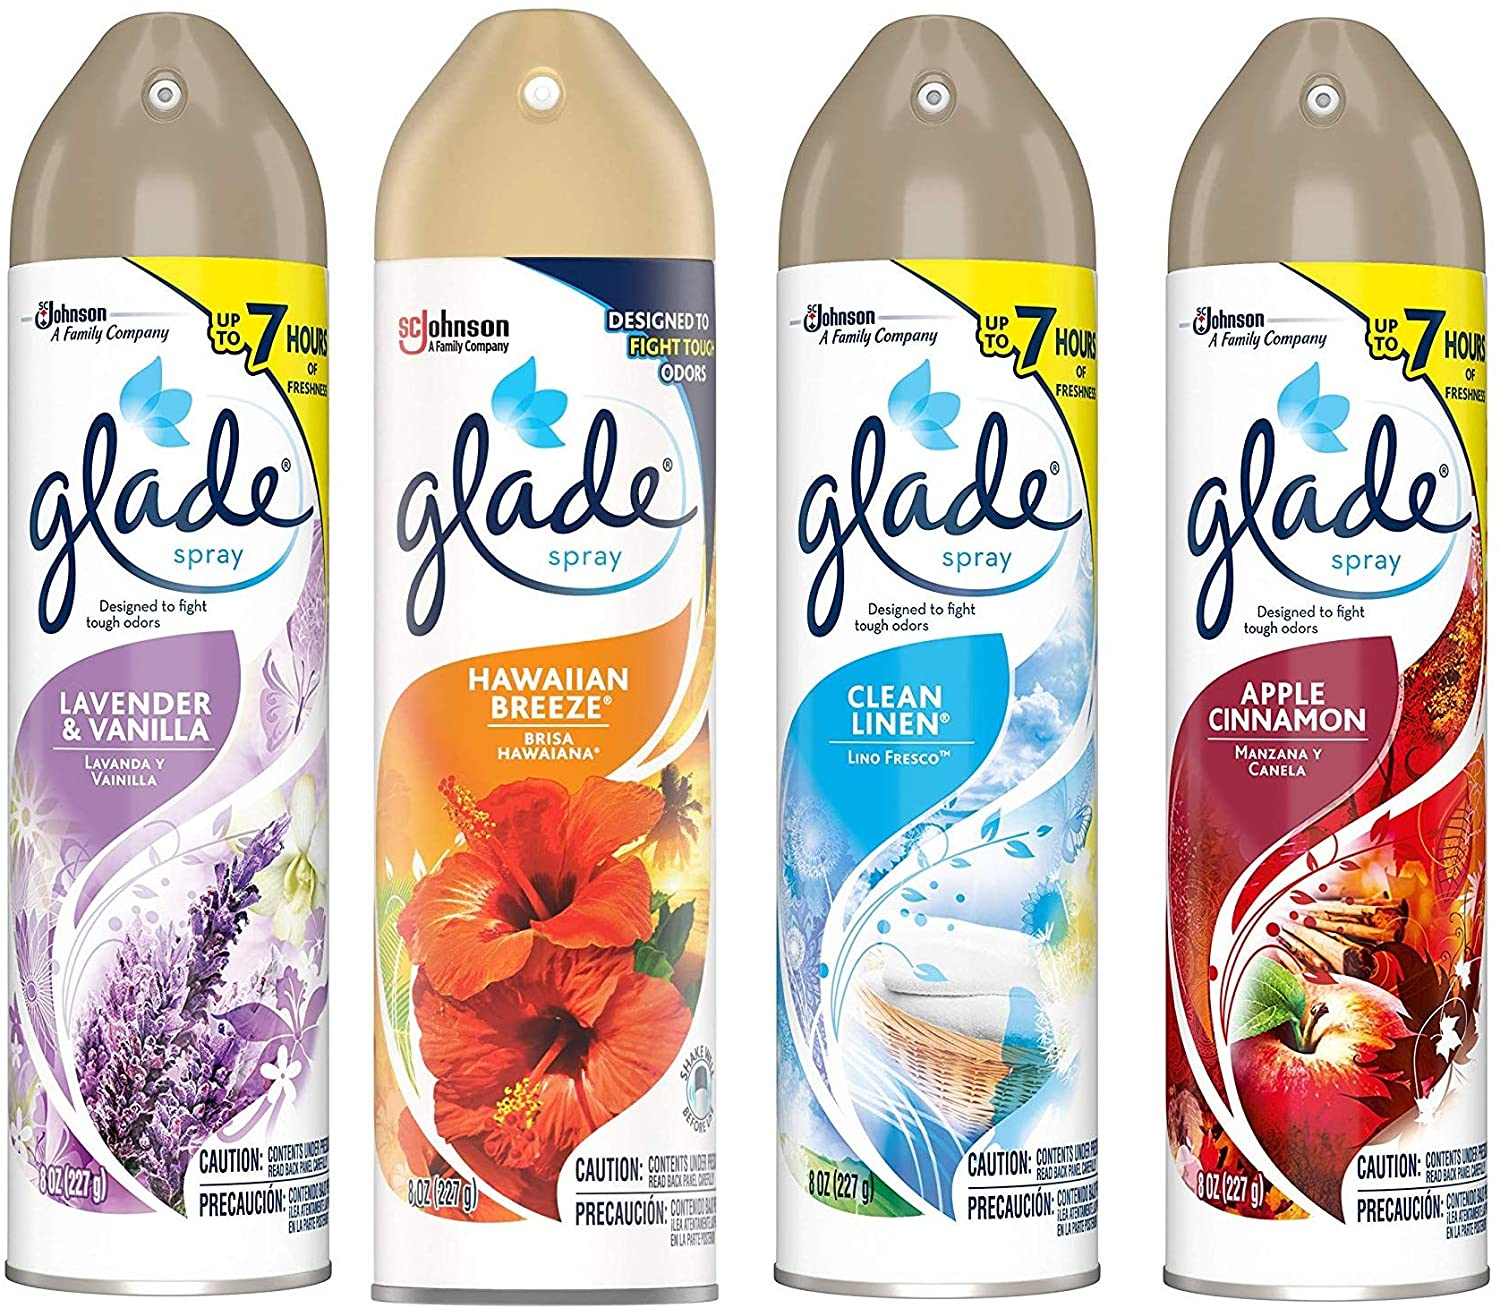 Glade Spray Collection 4 Flavors: Lavender & Peach Blossom, Hawaiian Breeze, Clean Linen & Apple Cinnamon. Pack of 4.